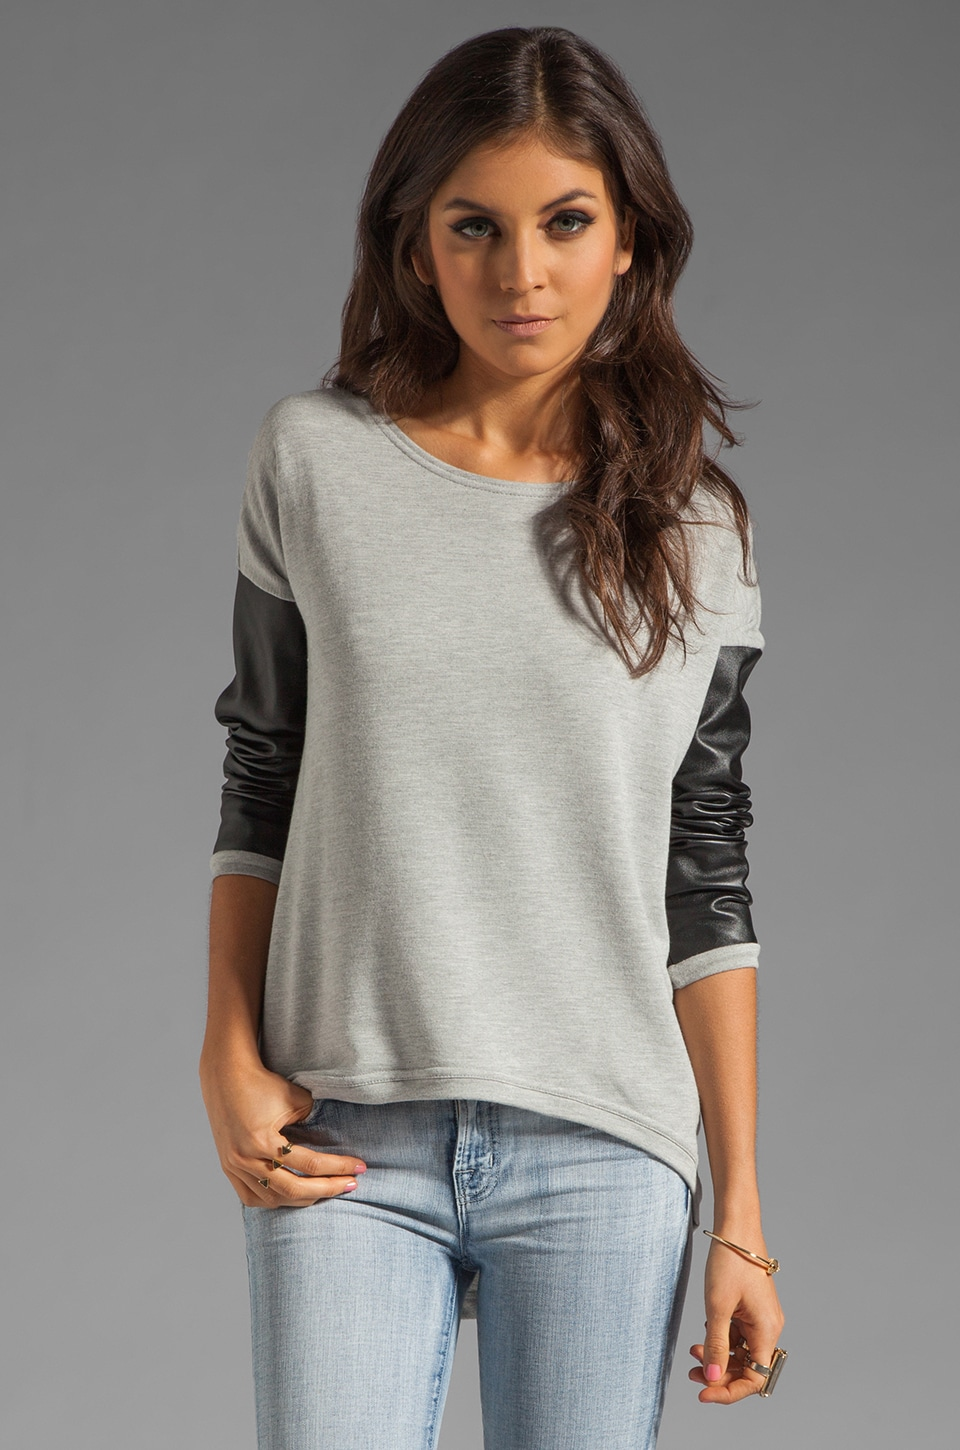 Generation Love Bobo Italian Faux Leather Sleeve Sweatshirt in Grey